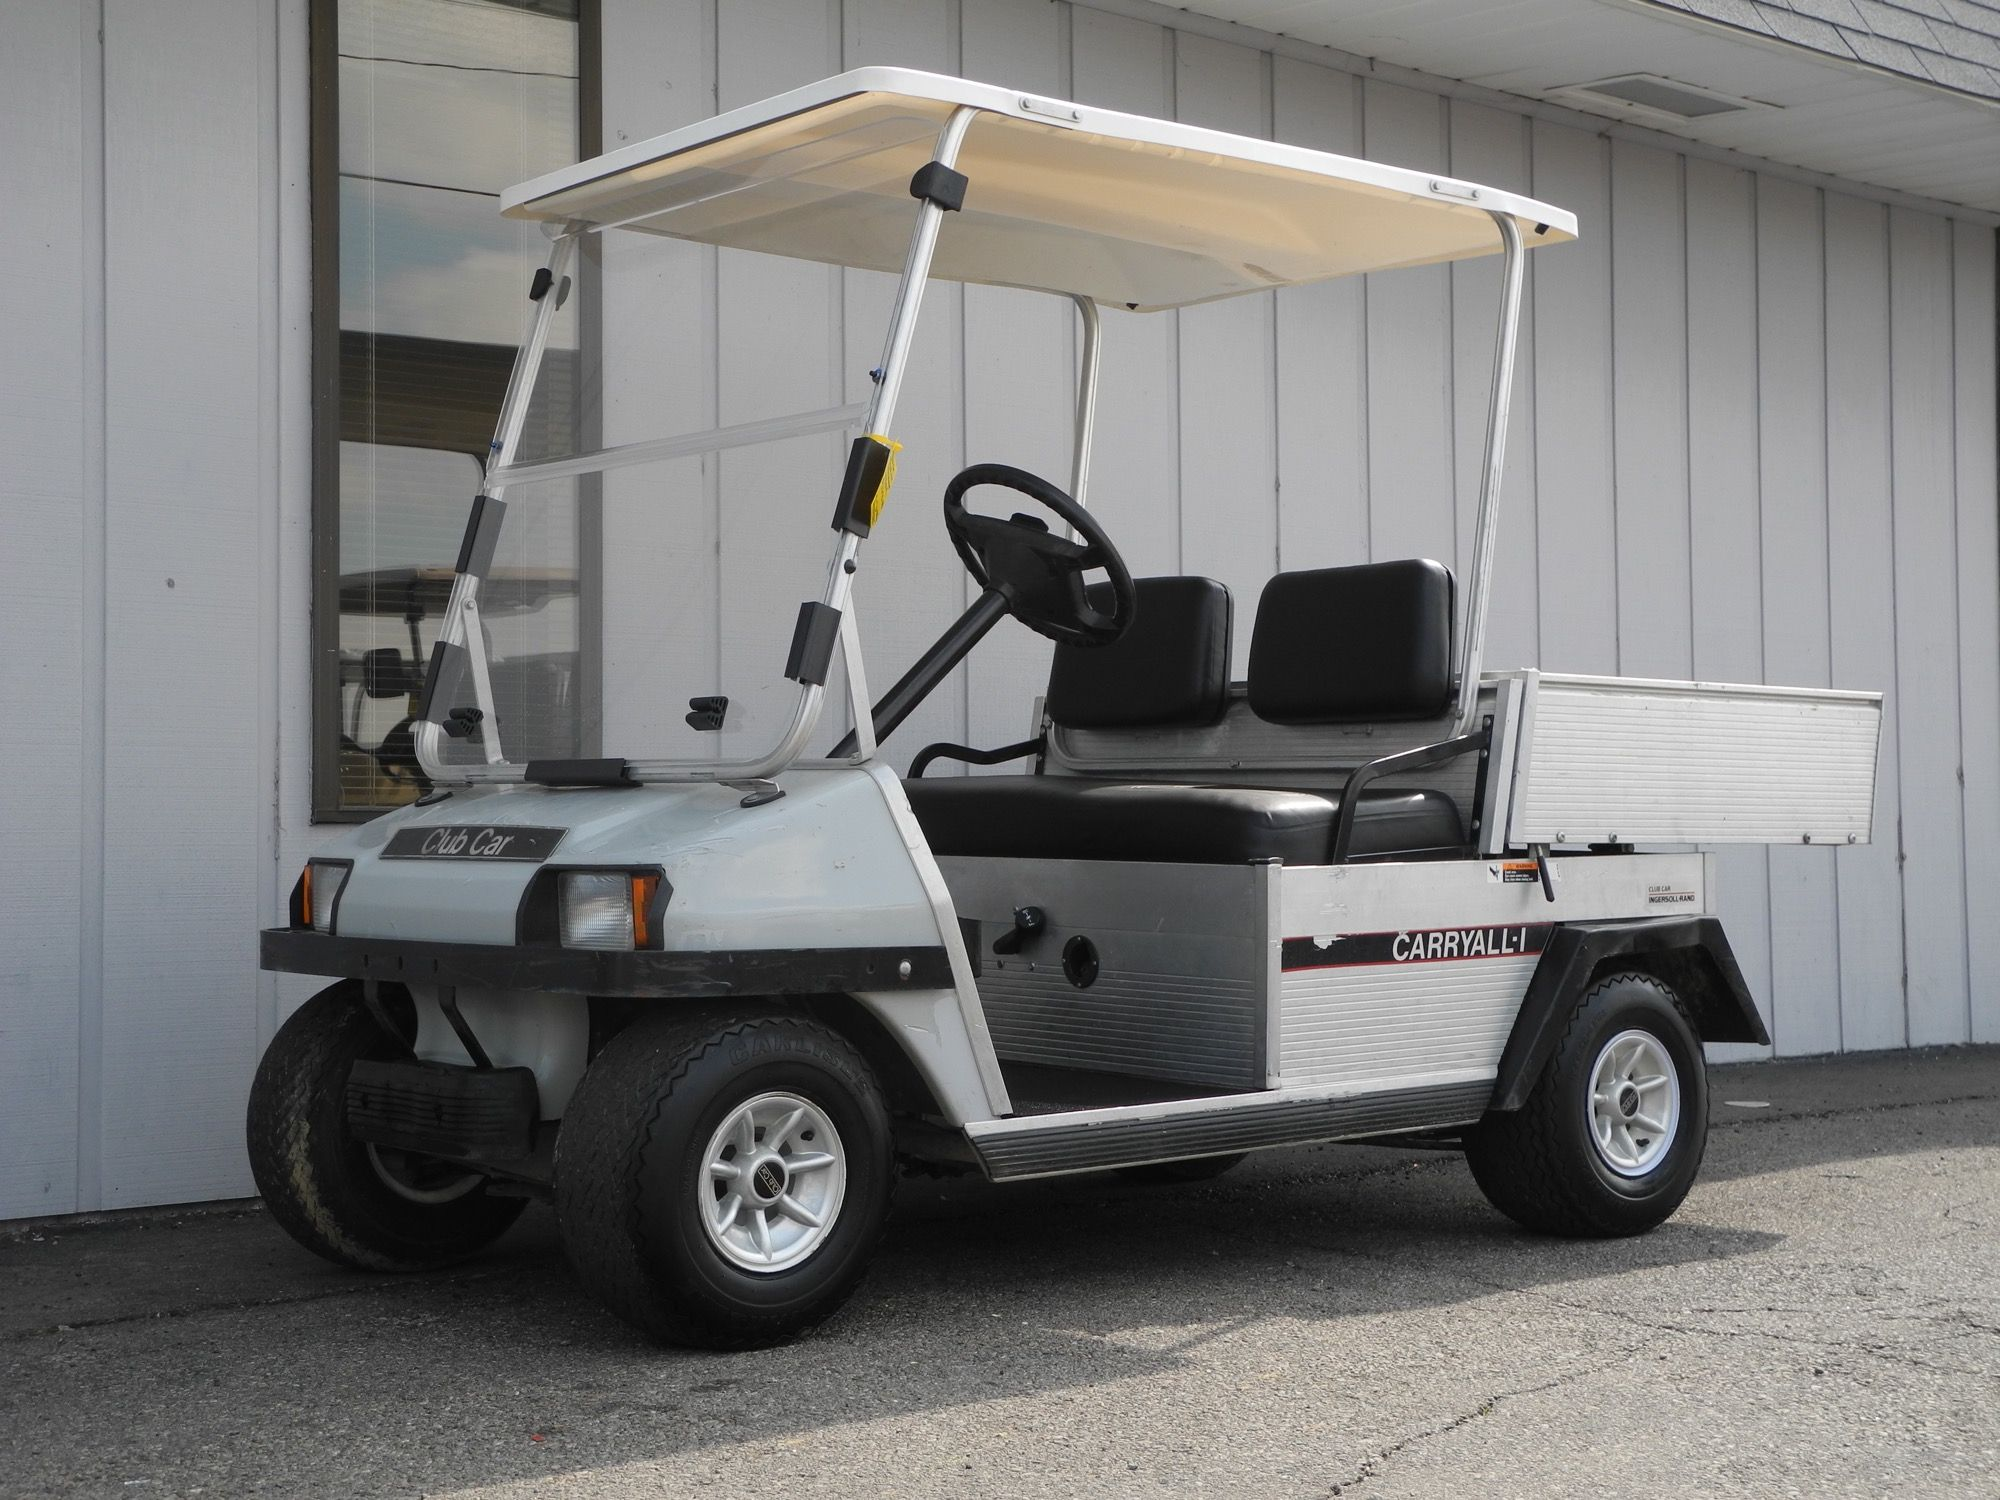 This 1999 Club Car Carryall 1 48volt electric golf car is